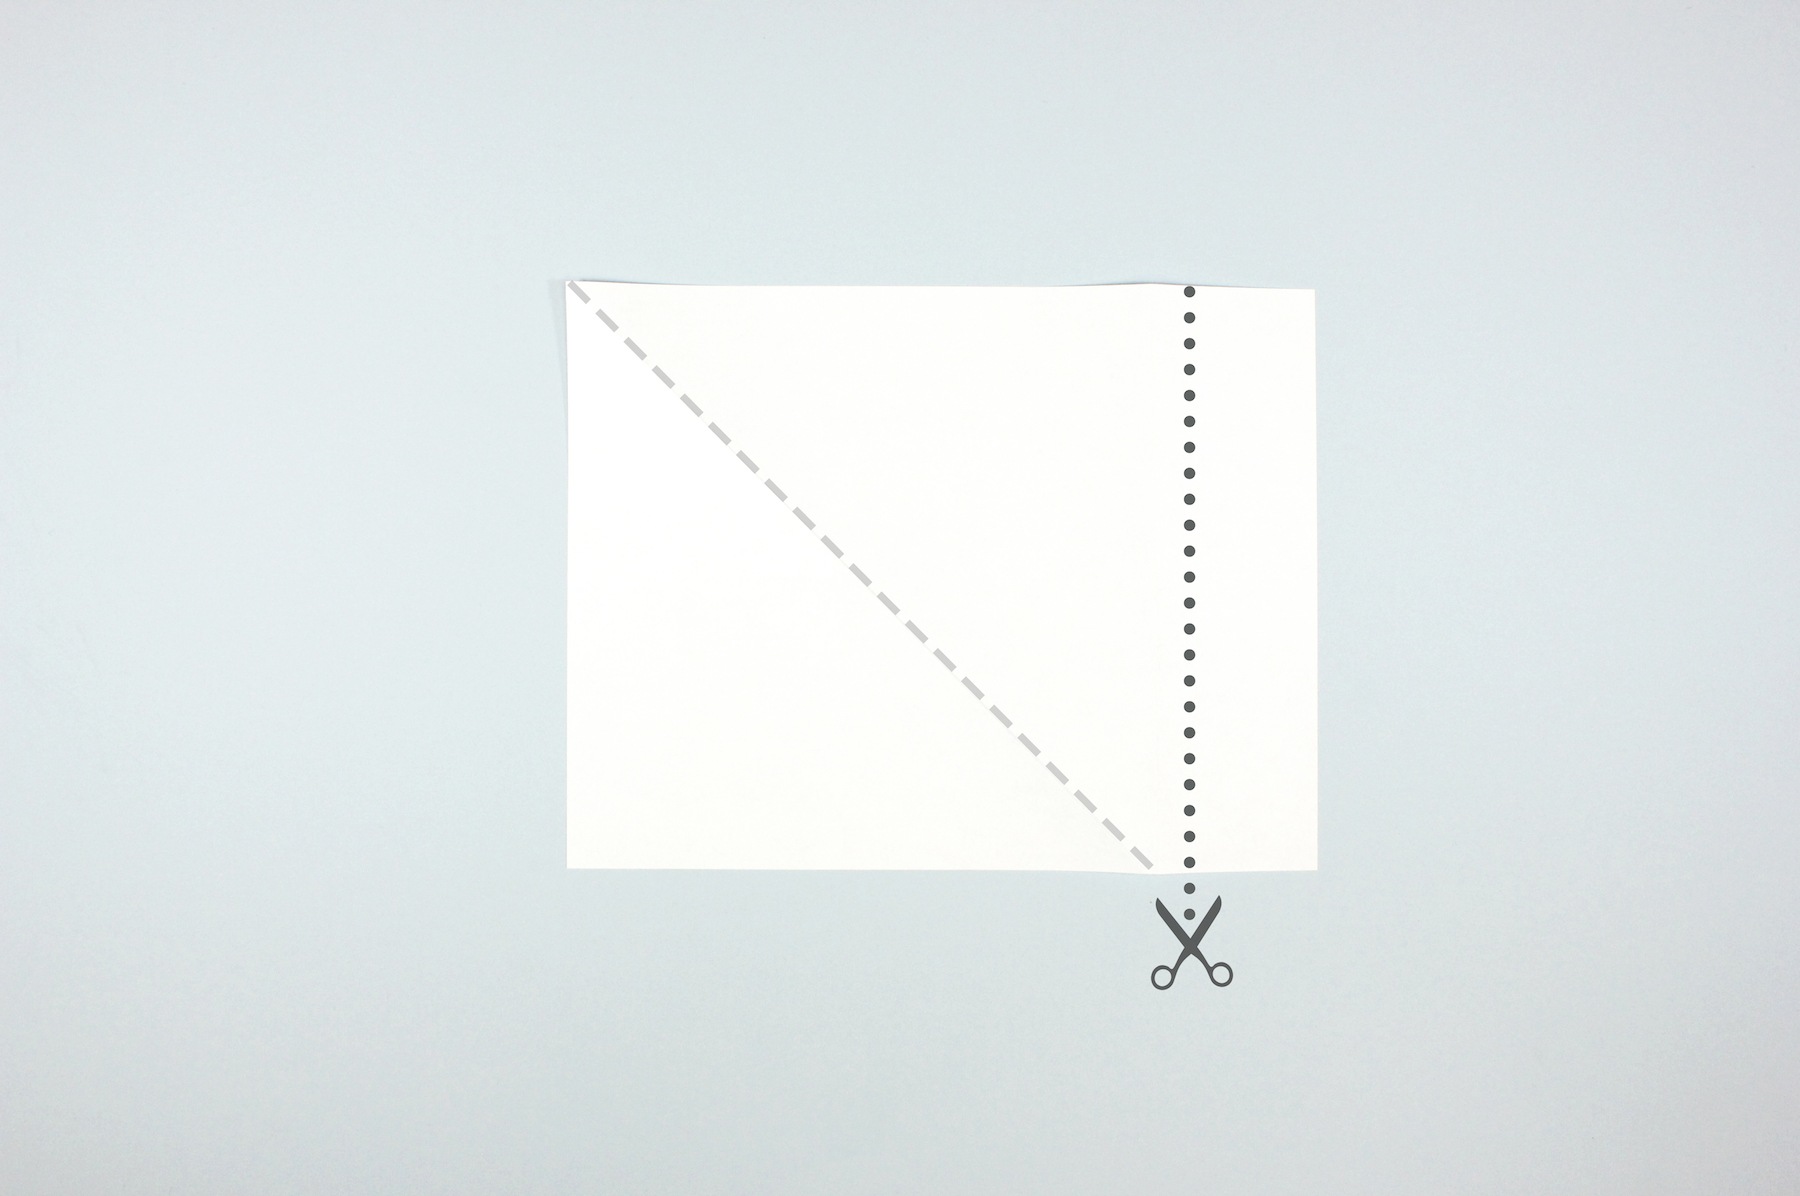 Fold Paper to make a square